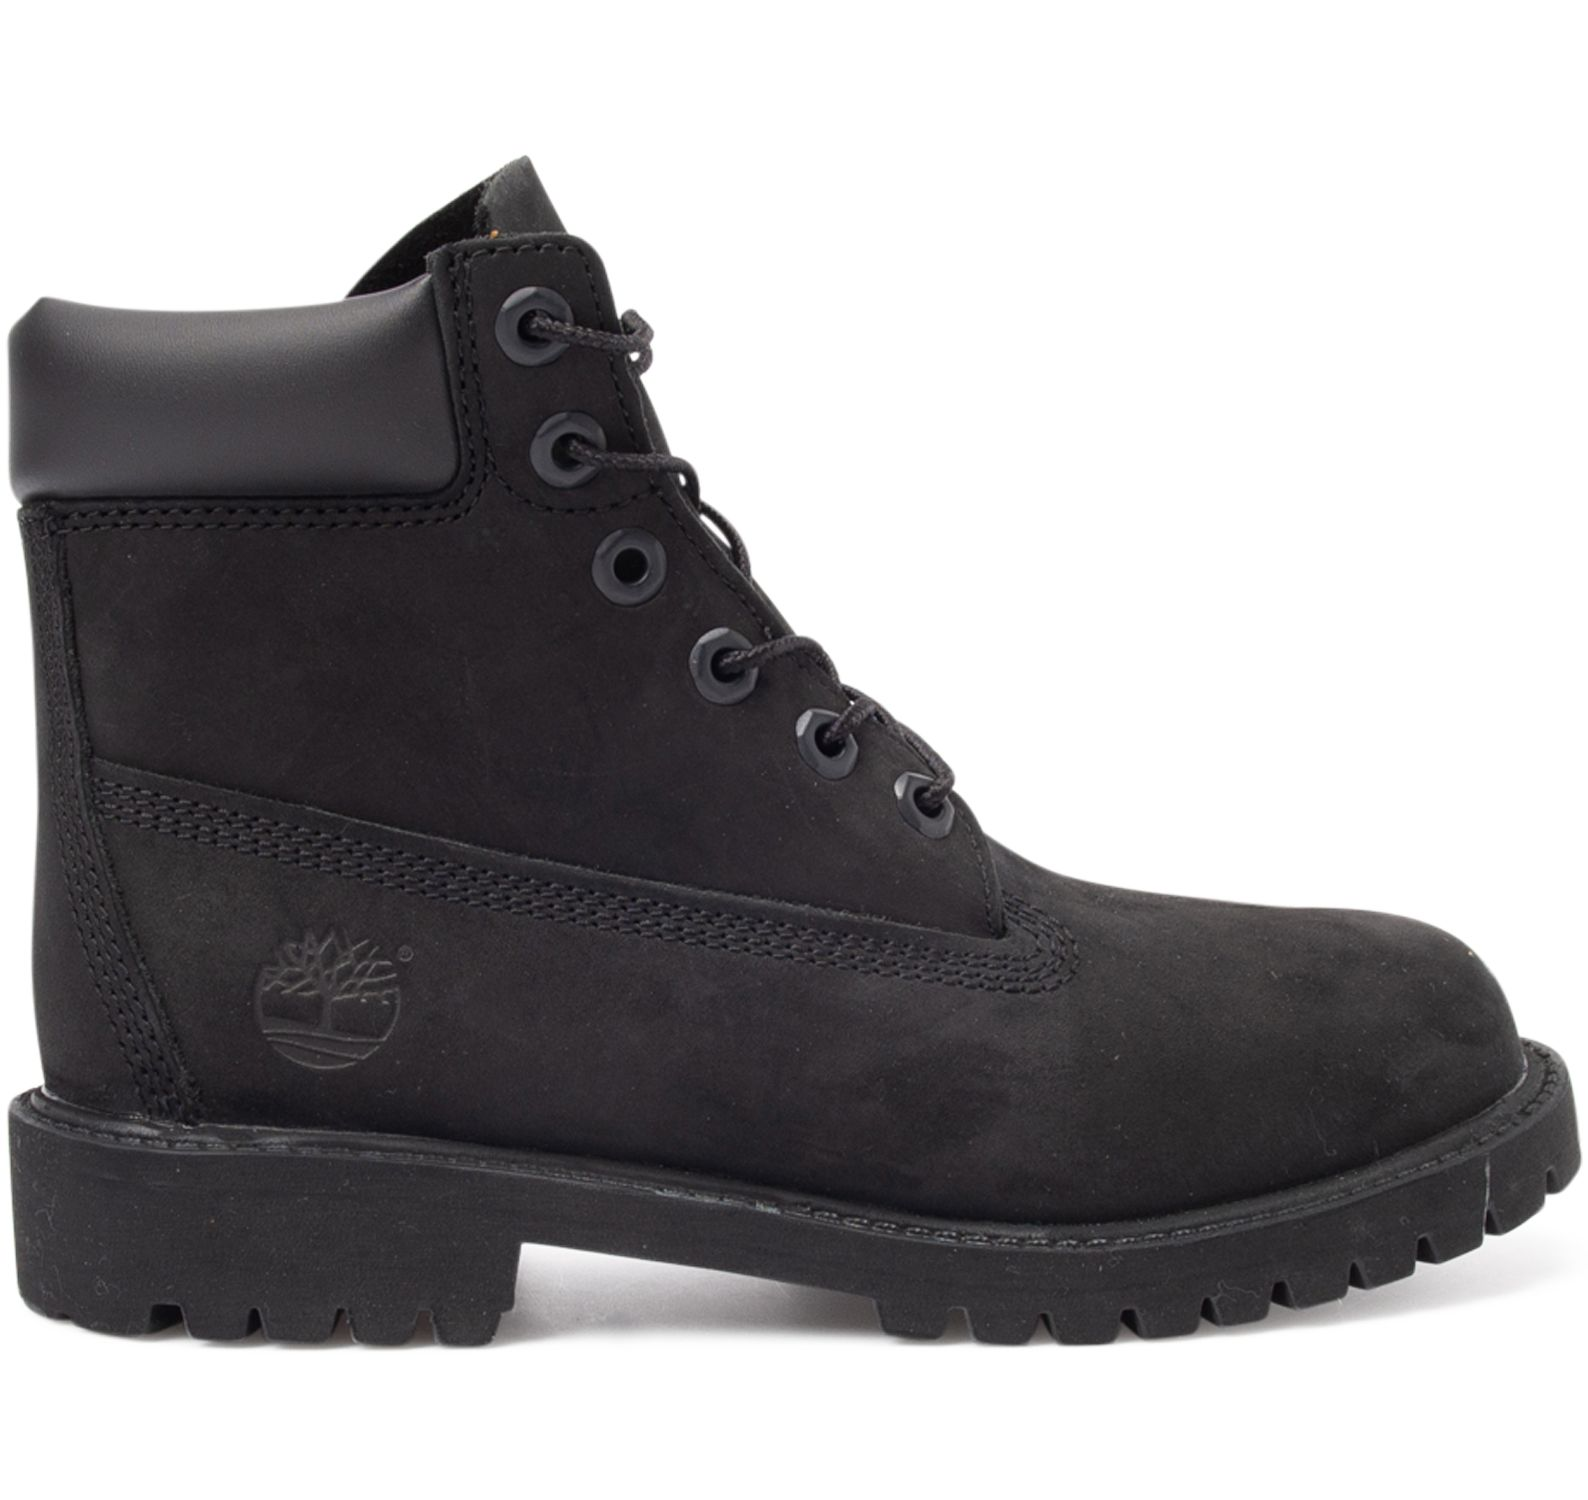 6 In Premium Wp Boot, Black, 36,  Timberland